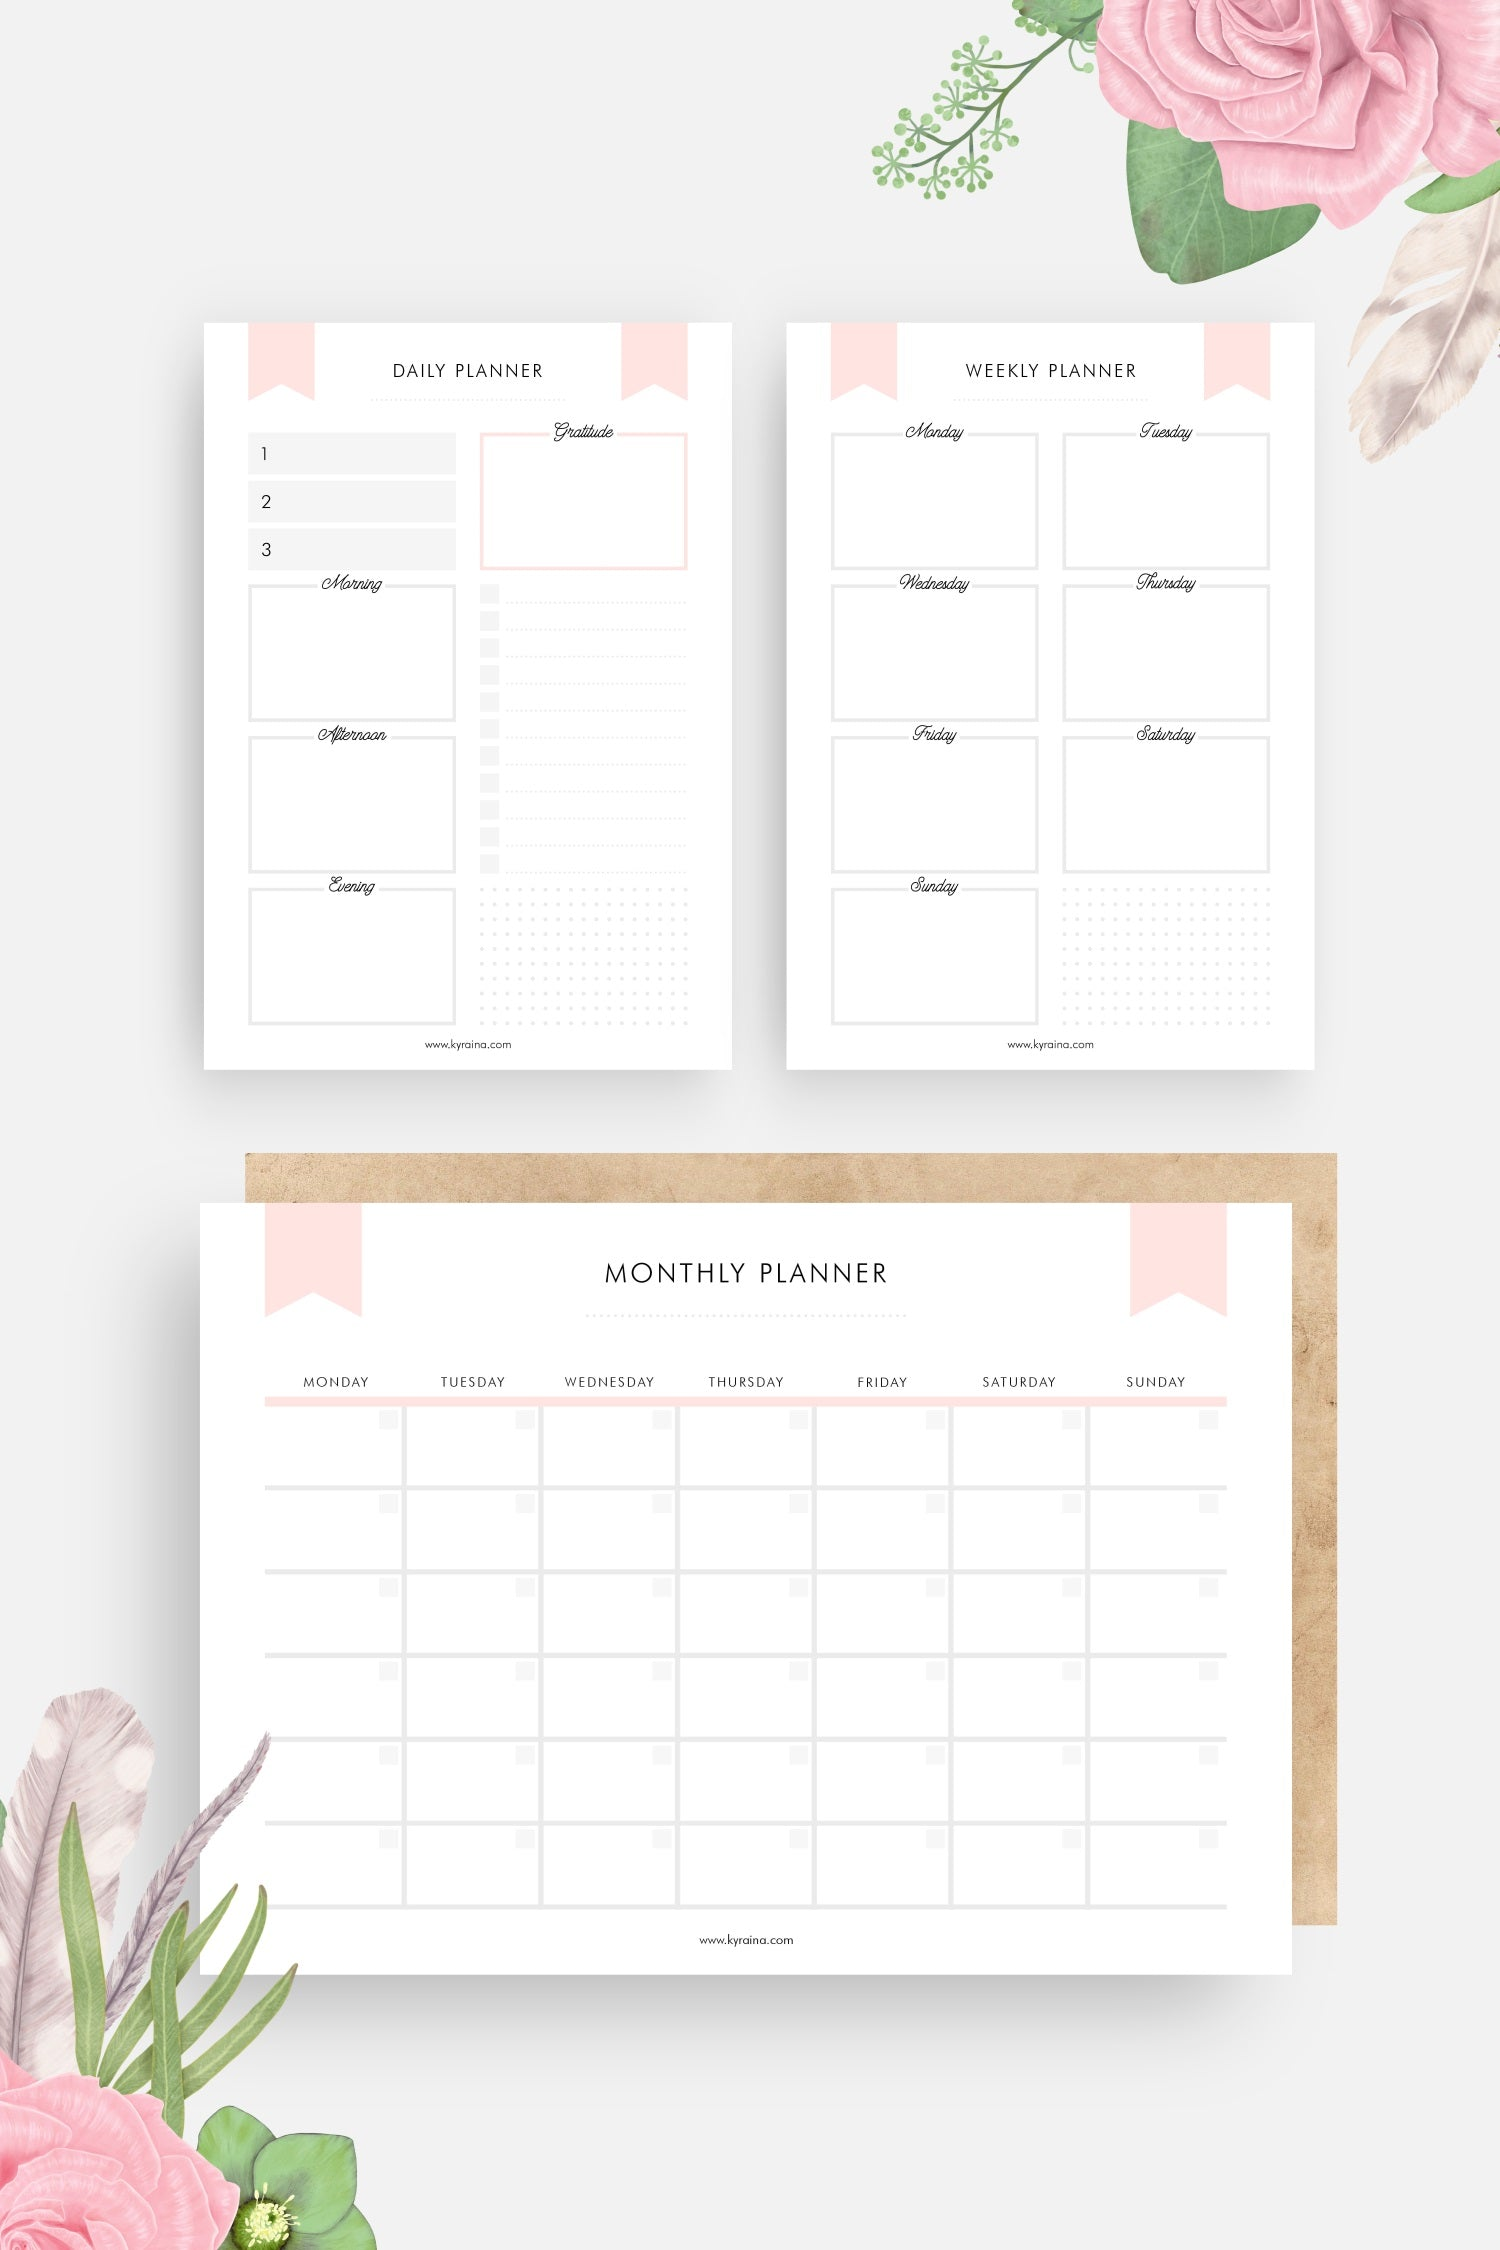 Free planner printable template pack, daily planner, weekly planner, monthly planner, 3 pages printable for life organization